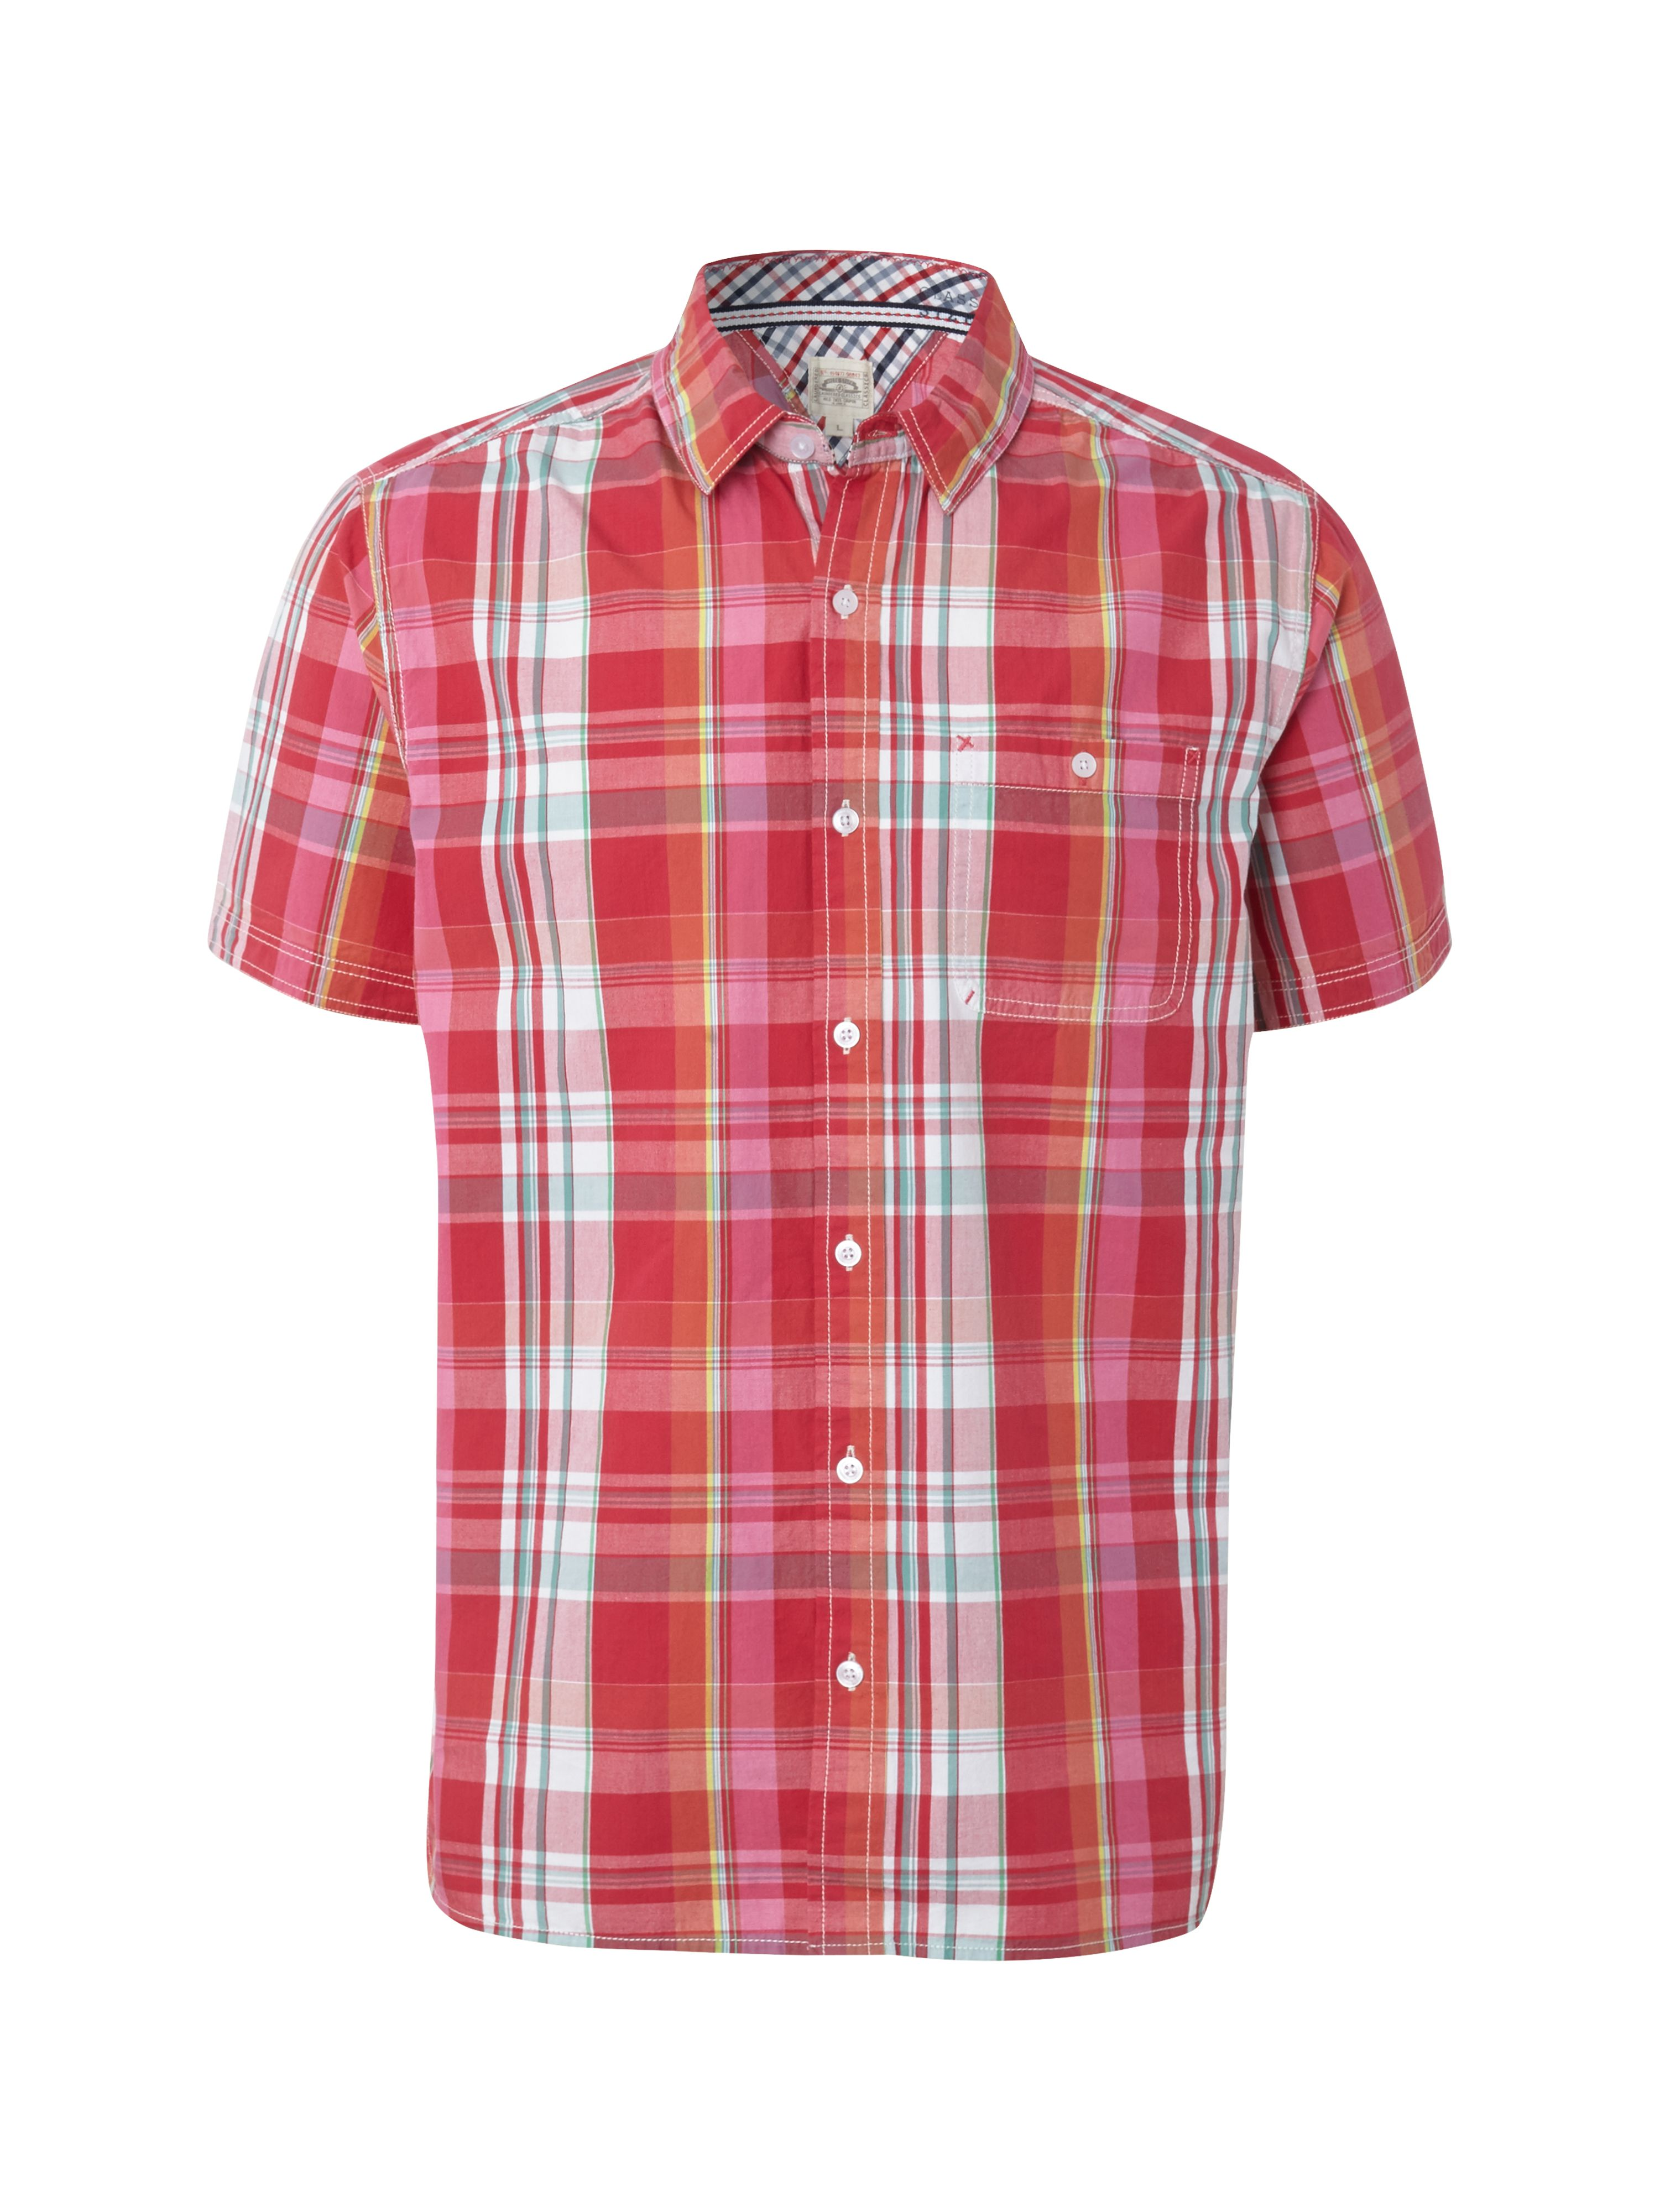 Madras short sleeve shirt